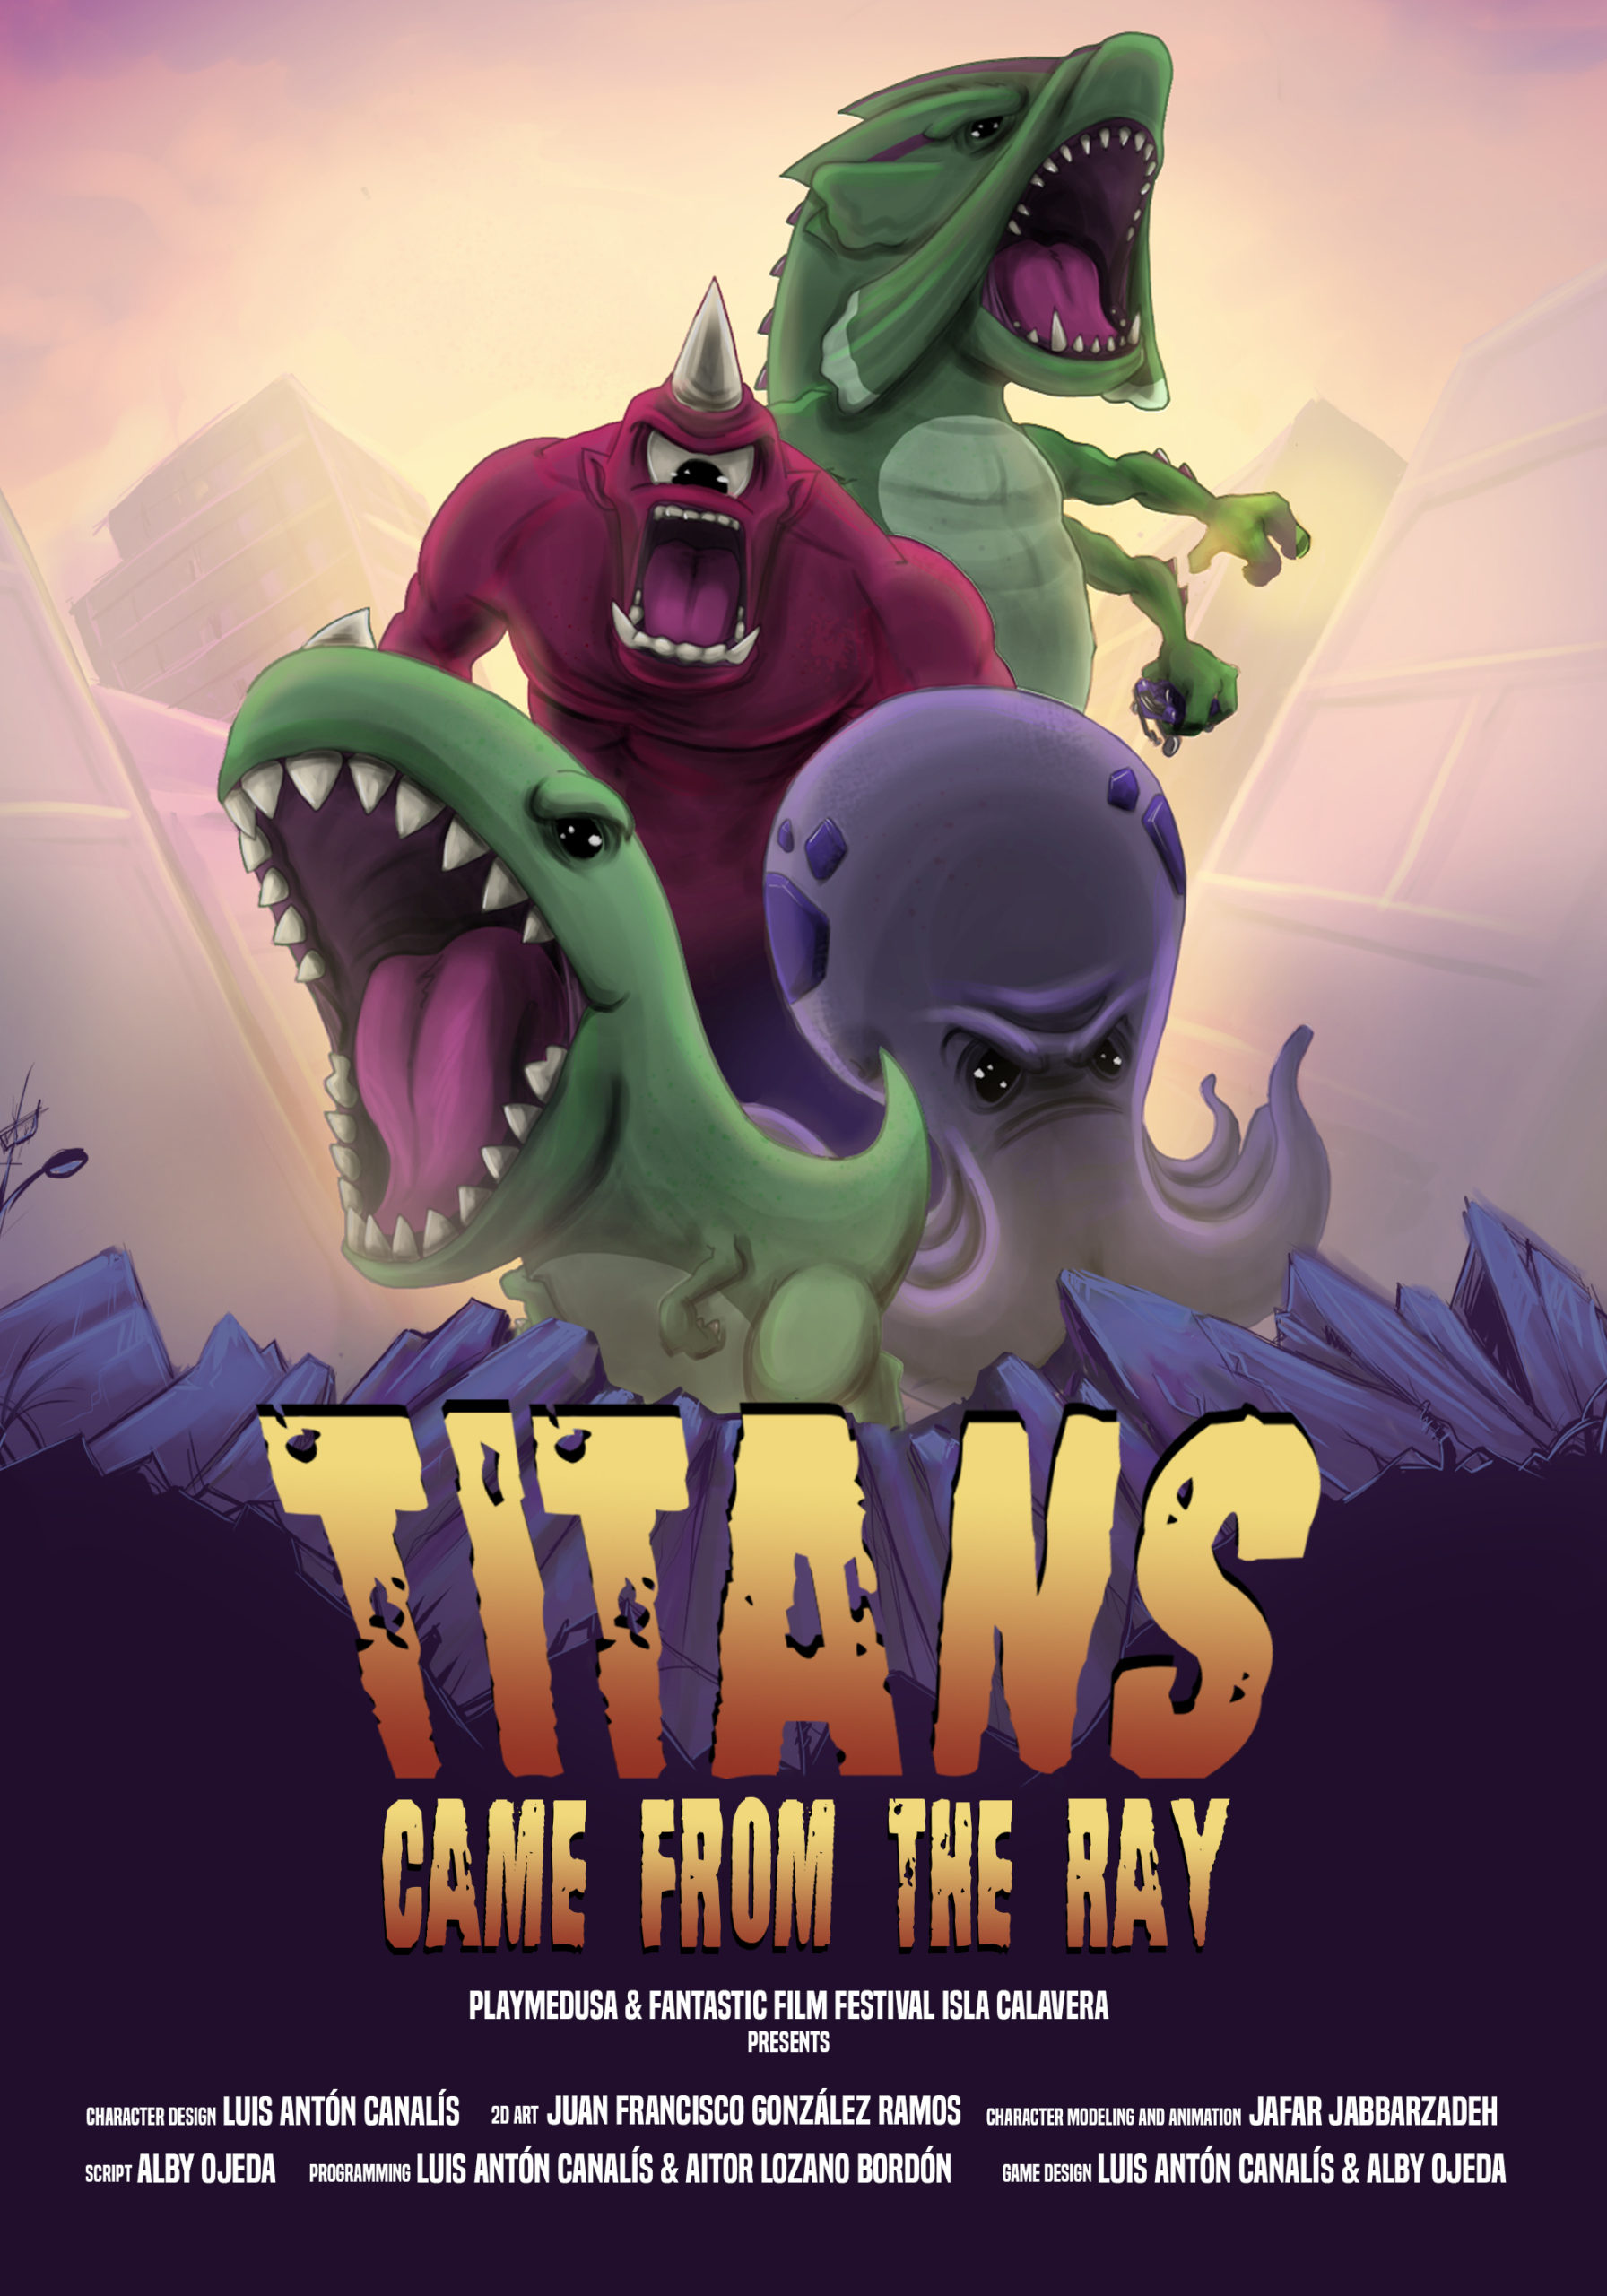 Póster 'Titans came from the Ray'